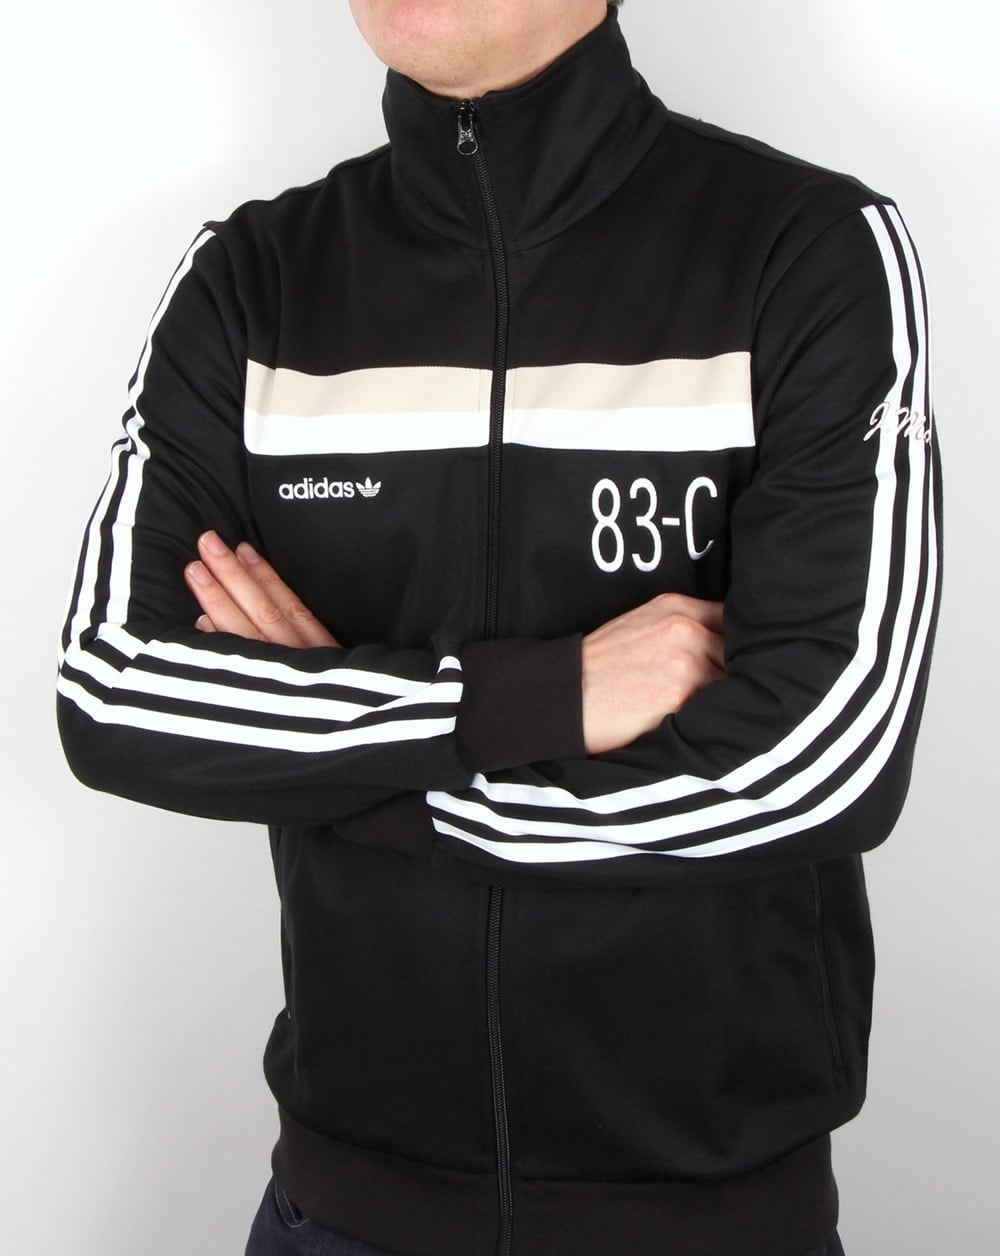 Adidas Originals 83 C Track Top Black Tracksuit Jacket Mens